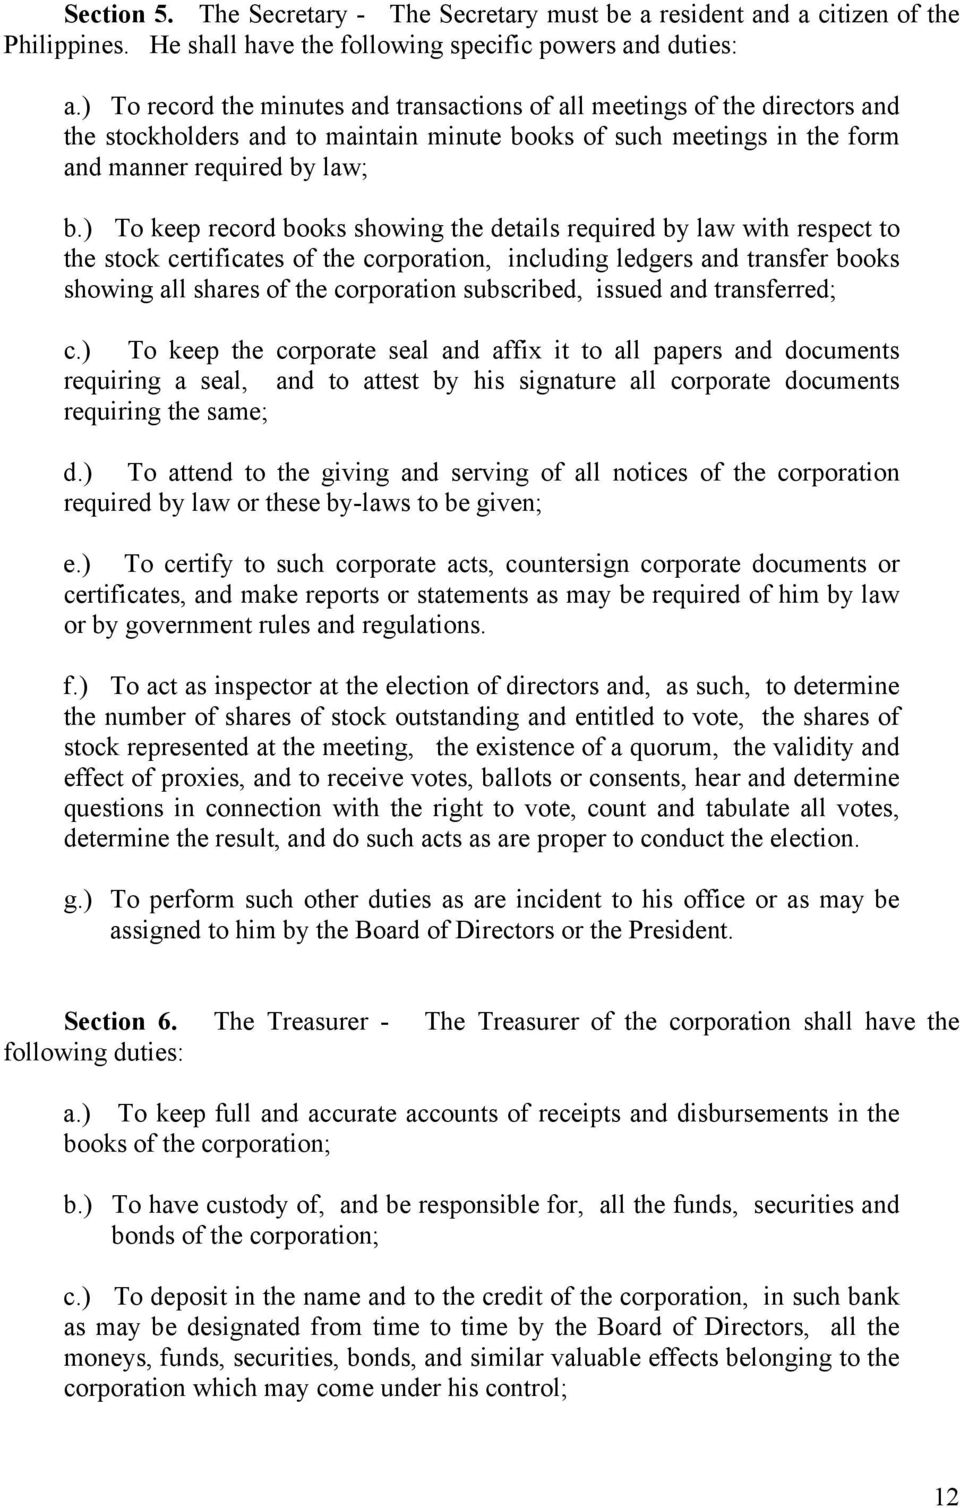 ) To keep record books showing the details required by law with respect to the stock certificates of the corporation, including ledgers and transfer books showing all shares of the corporation